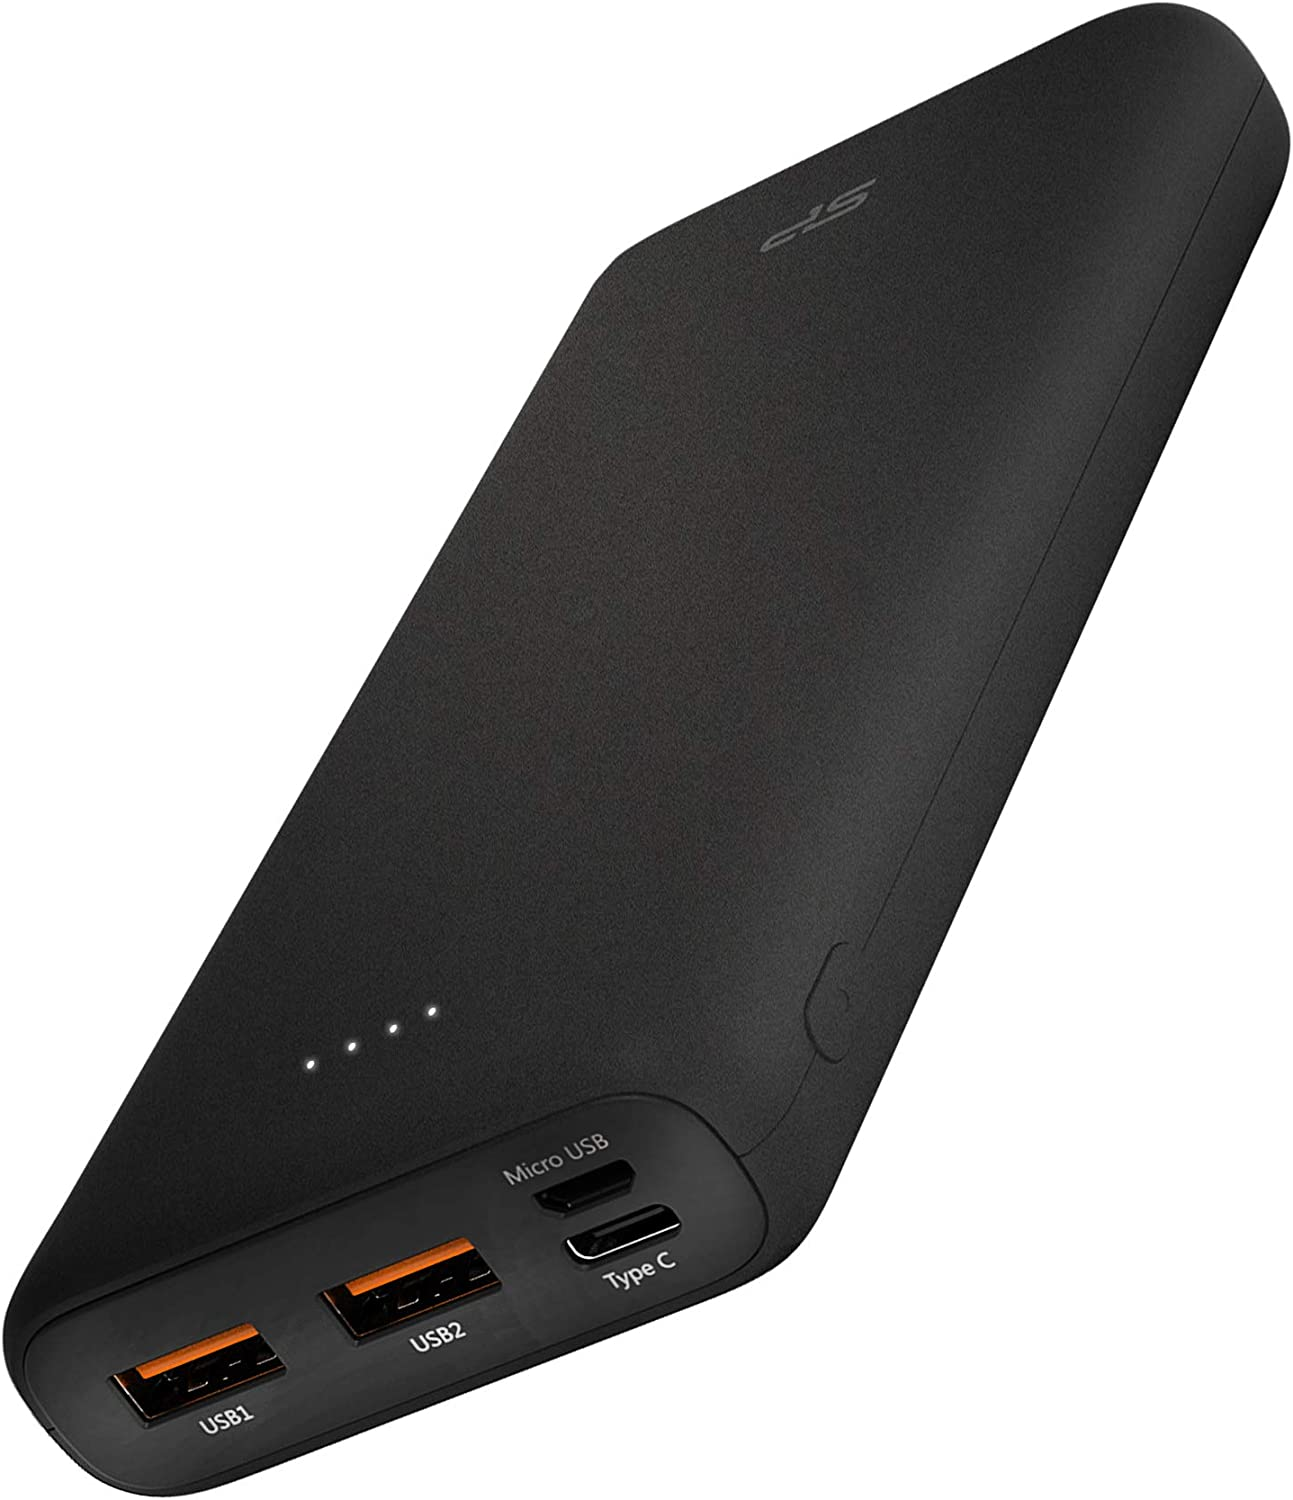 Silicon Power A55 USB C Power Bank 20000mAh, Portable Charger